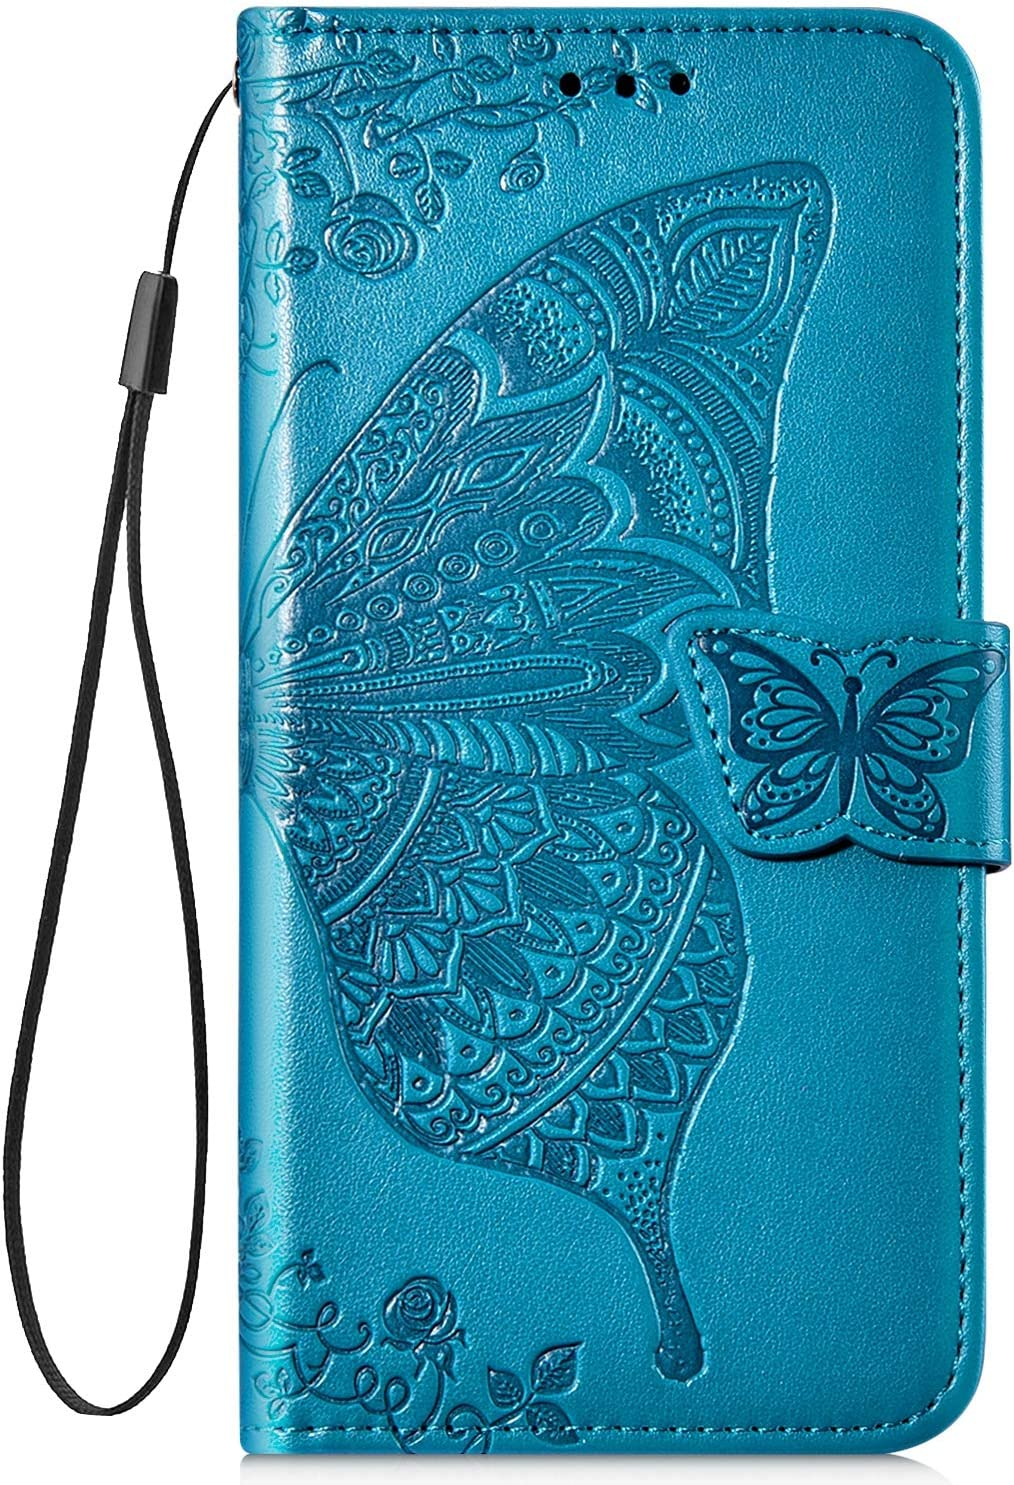 Herbests Compatible with Samsung Galaxy J4 2018 Wallet Case Slim Folio Leather Cover 3D Butterfly Flower Pattern Bookstyle Protective Cover Wrist Strap Kickstand Card Holder,Dark Purple